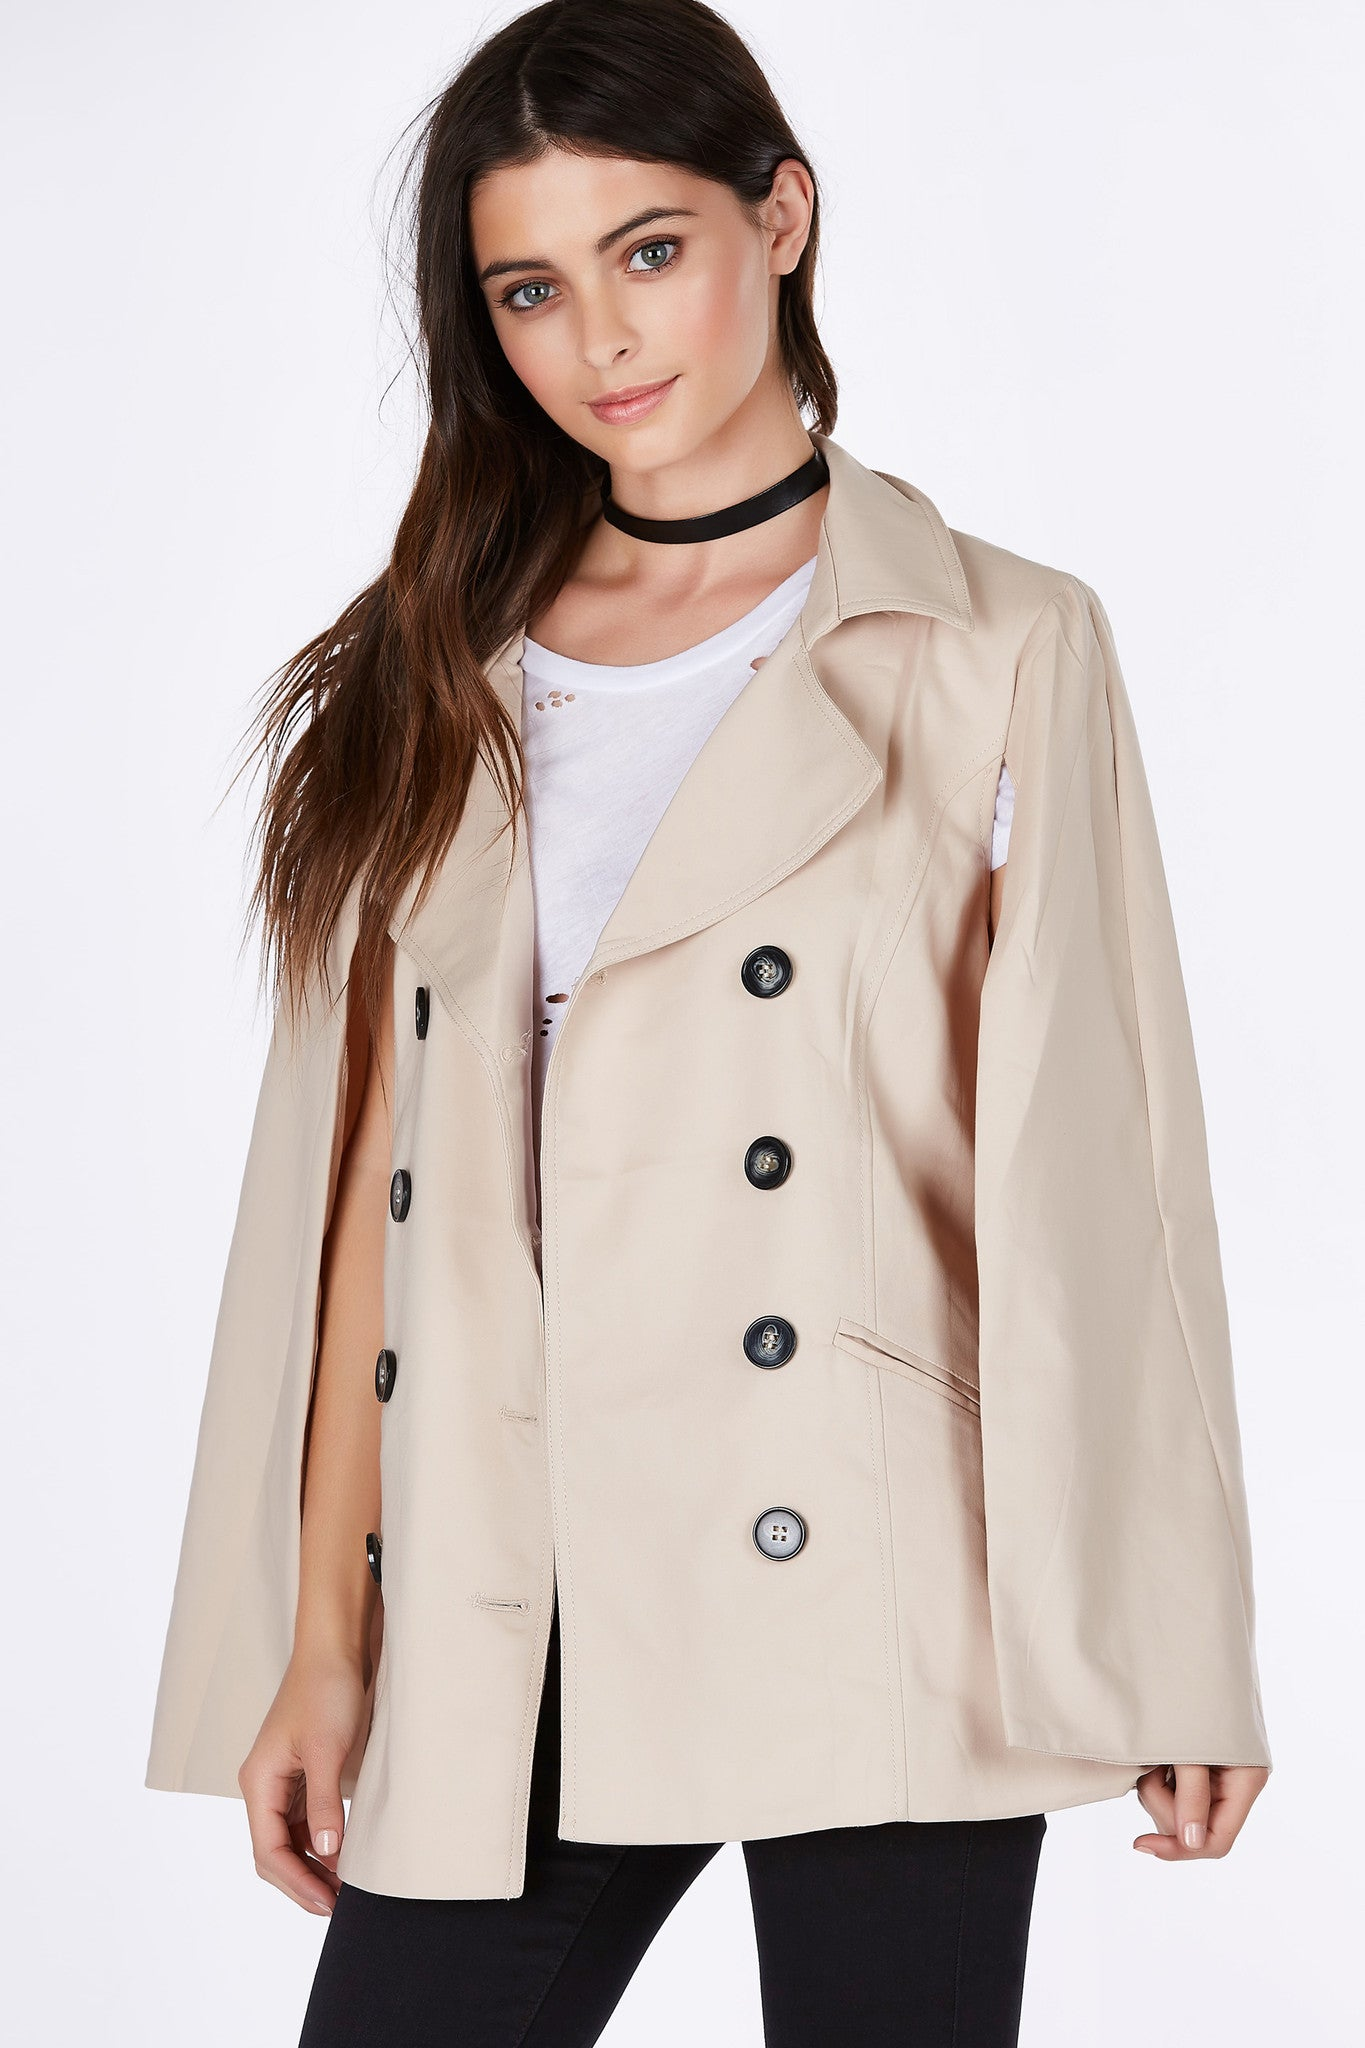 A classic trench with a stylish twist. Cape design brings a preppy vibe to your look. Clean collars with buttons in front for closure. Faux pockets for added detail, great to style with a white tee and skinny denims.